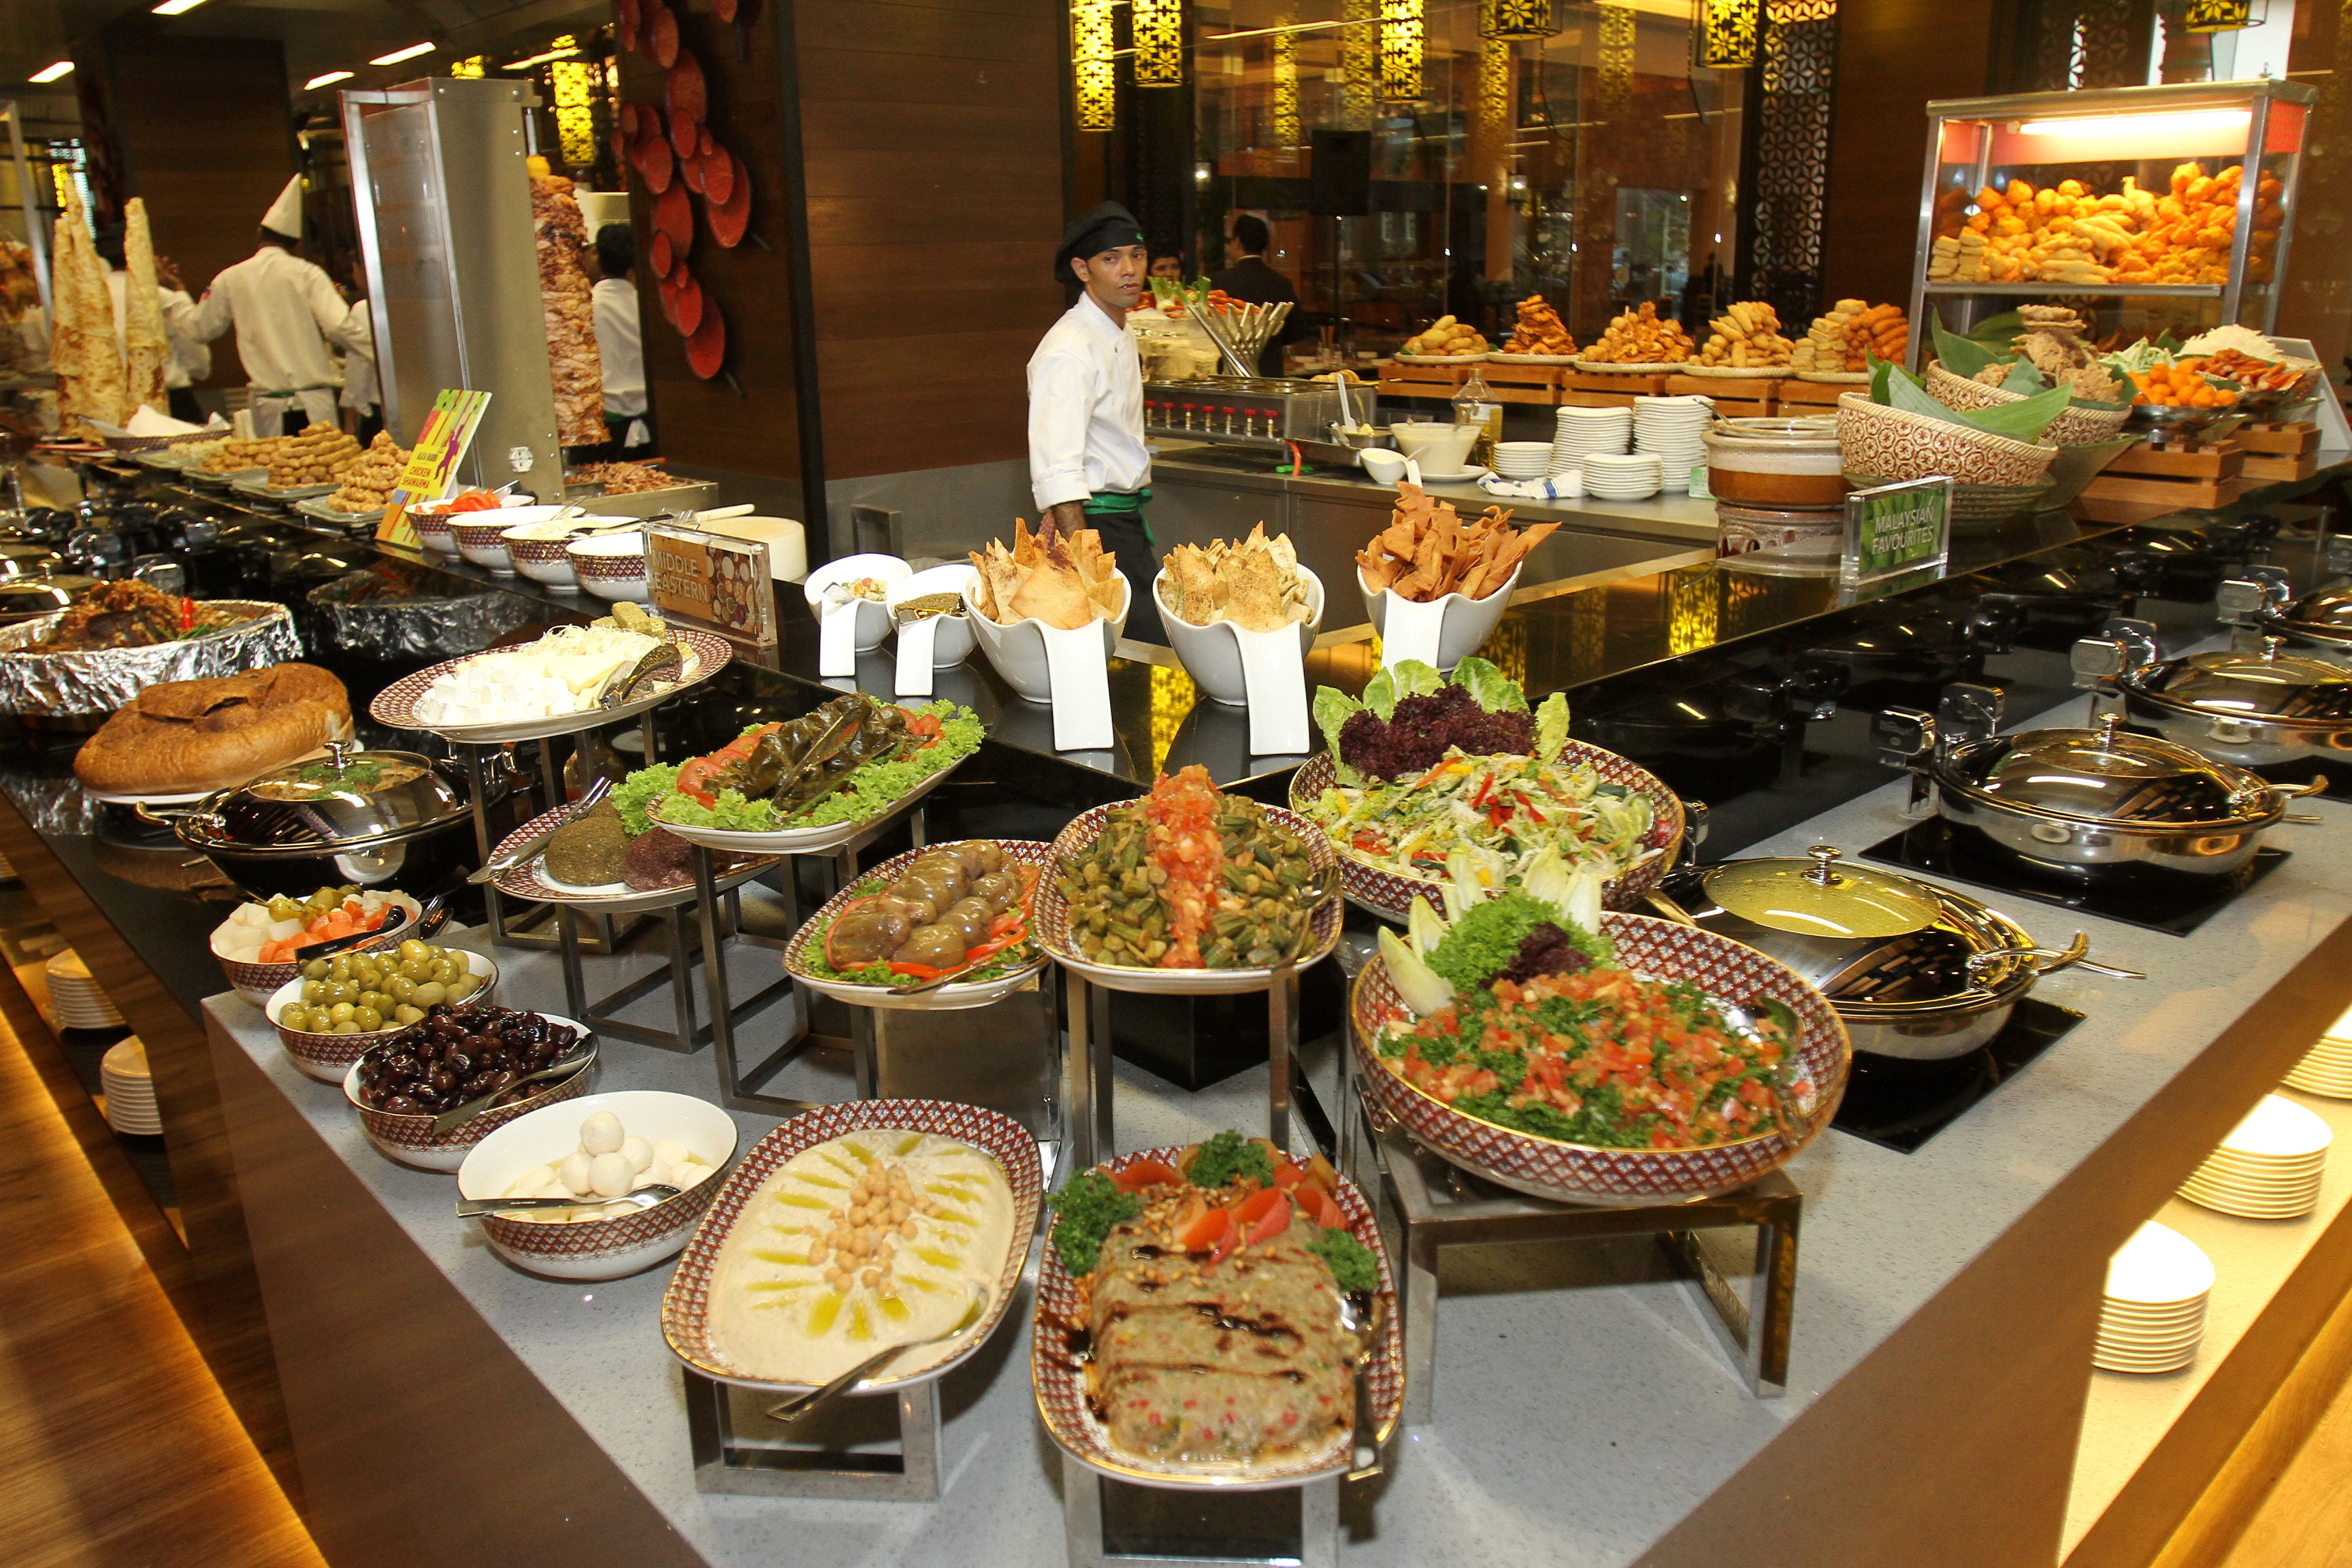 Kitchen 6 Dubai Lunch Buffet The Resort Cafe 39s International Flavours Set To Appeal To